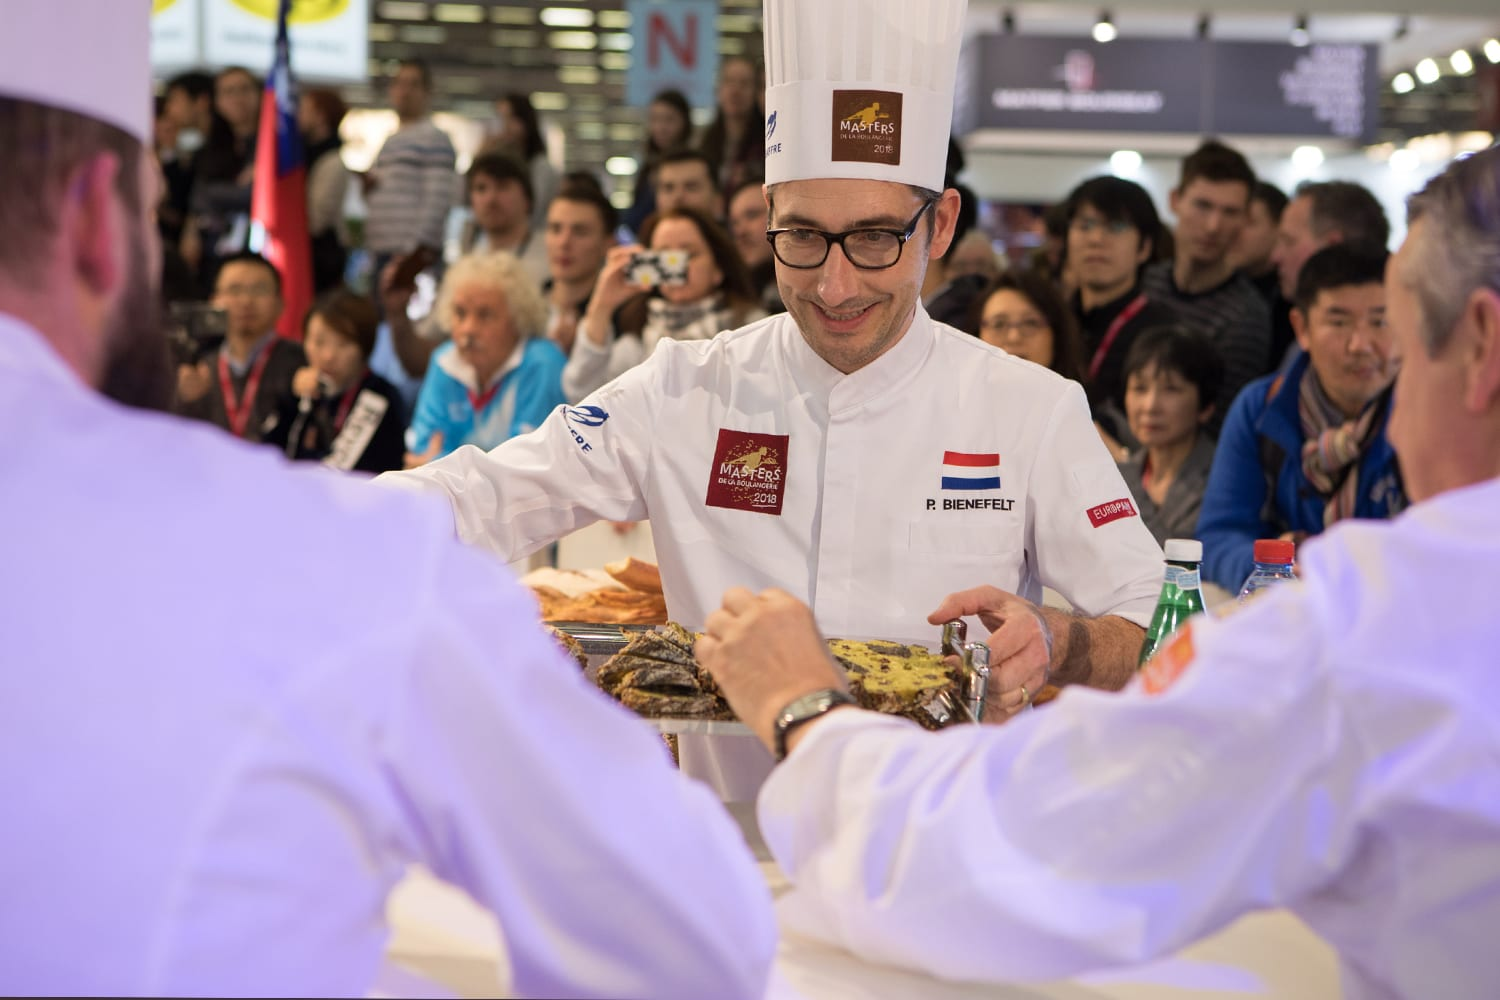 The Dutchman will showcase his capabilities on the China Bakery fair 2018 in Shanghai by demonstrations on Thursday (May 10th) and Friday (May 11th).